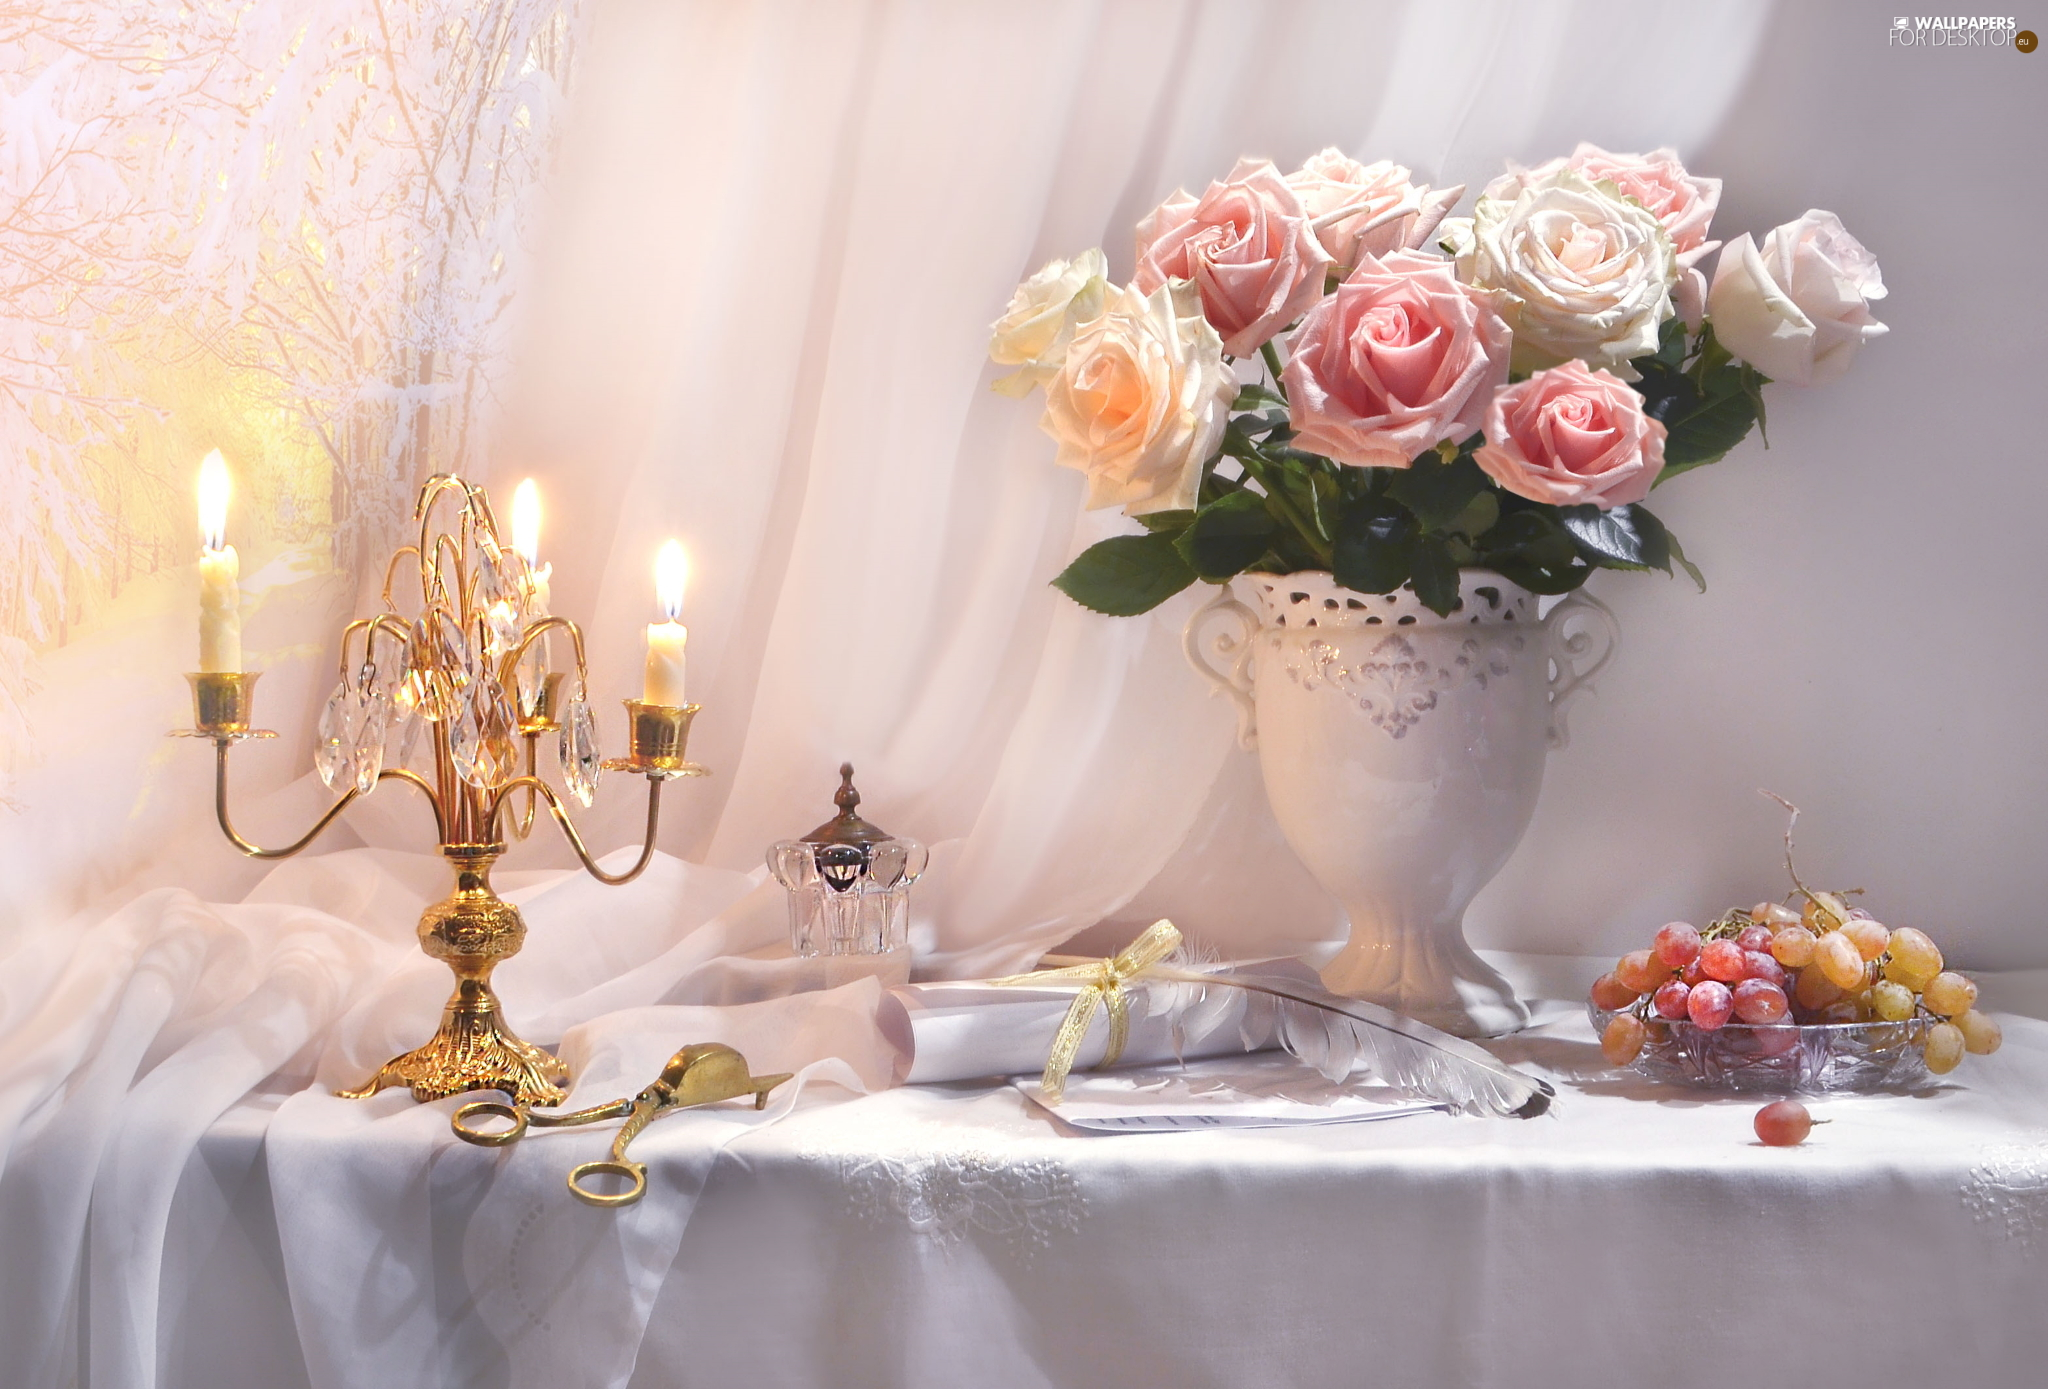 roses, Vase, Candles, bouquet, composition, candlestick, Grapes